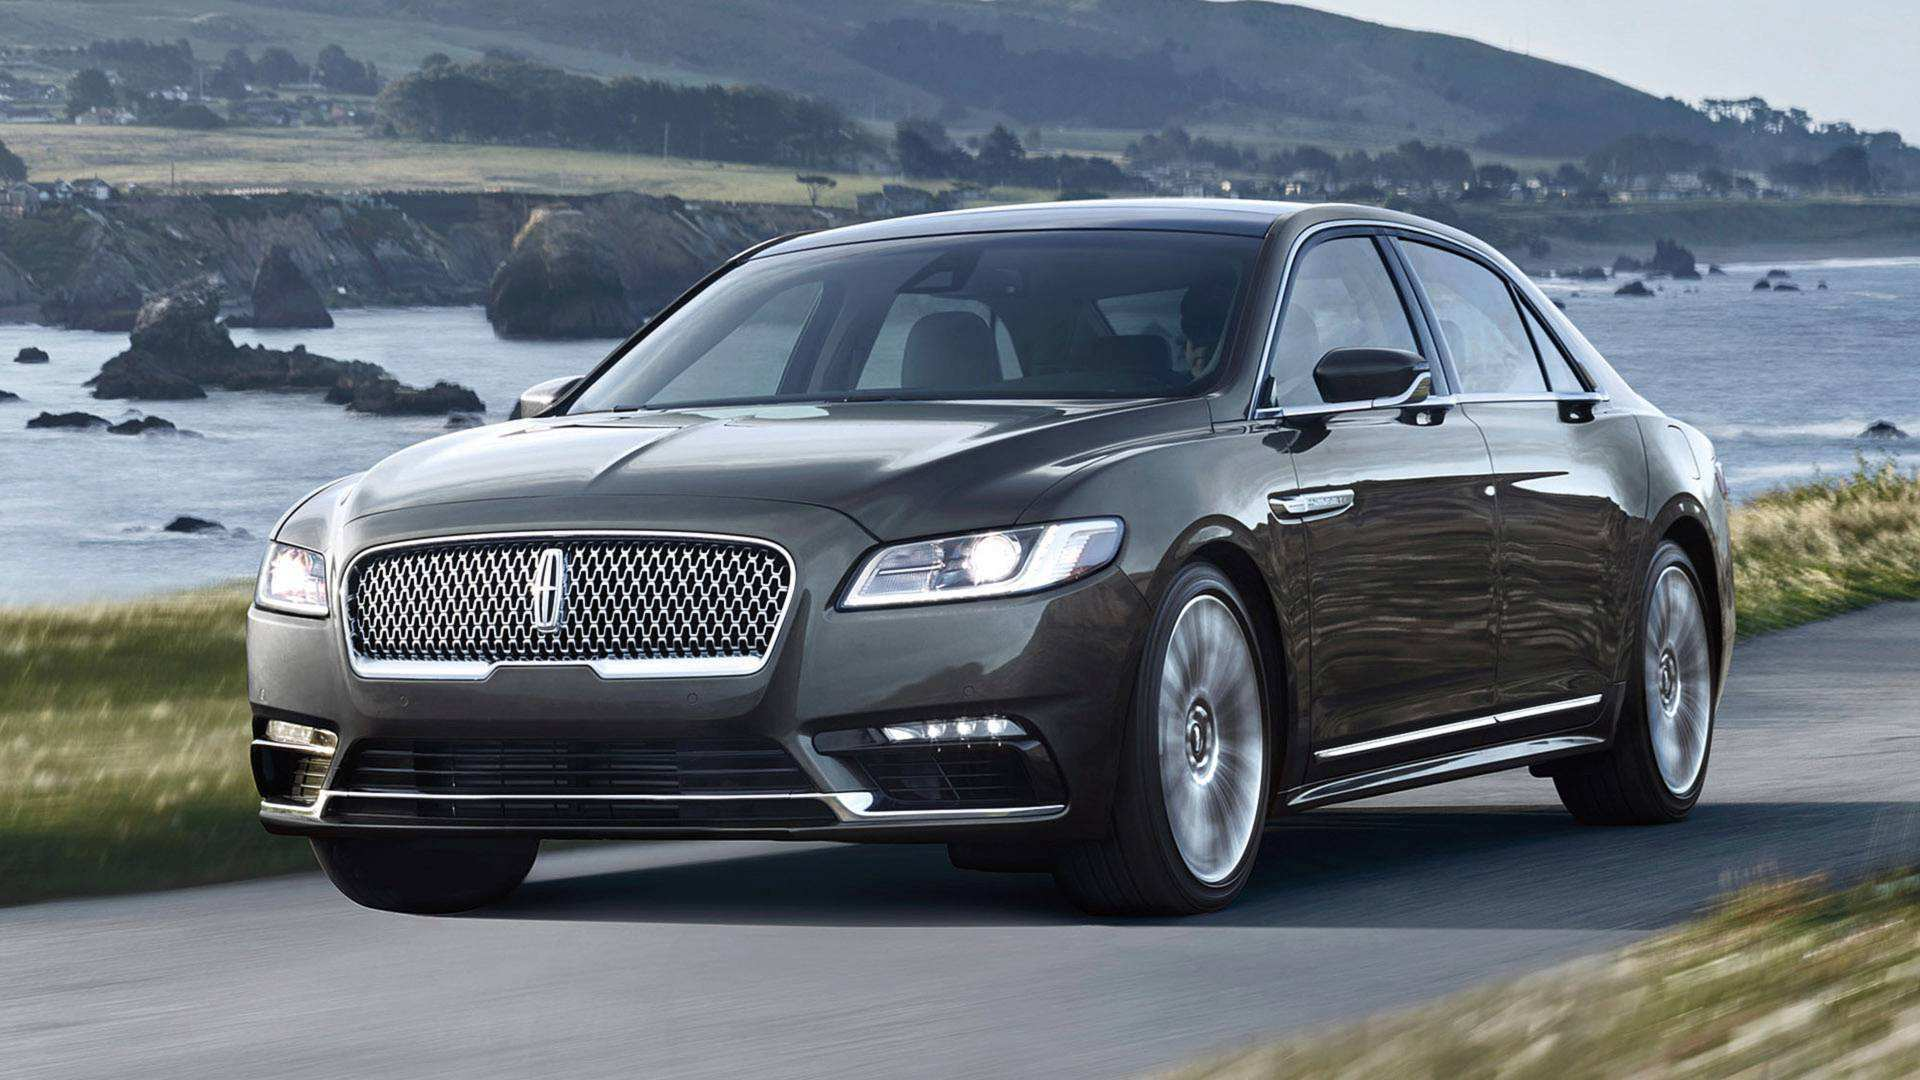 22 New 2020 The Lincoln Continental First Drive for 2020 The Lincoln Continental